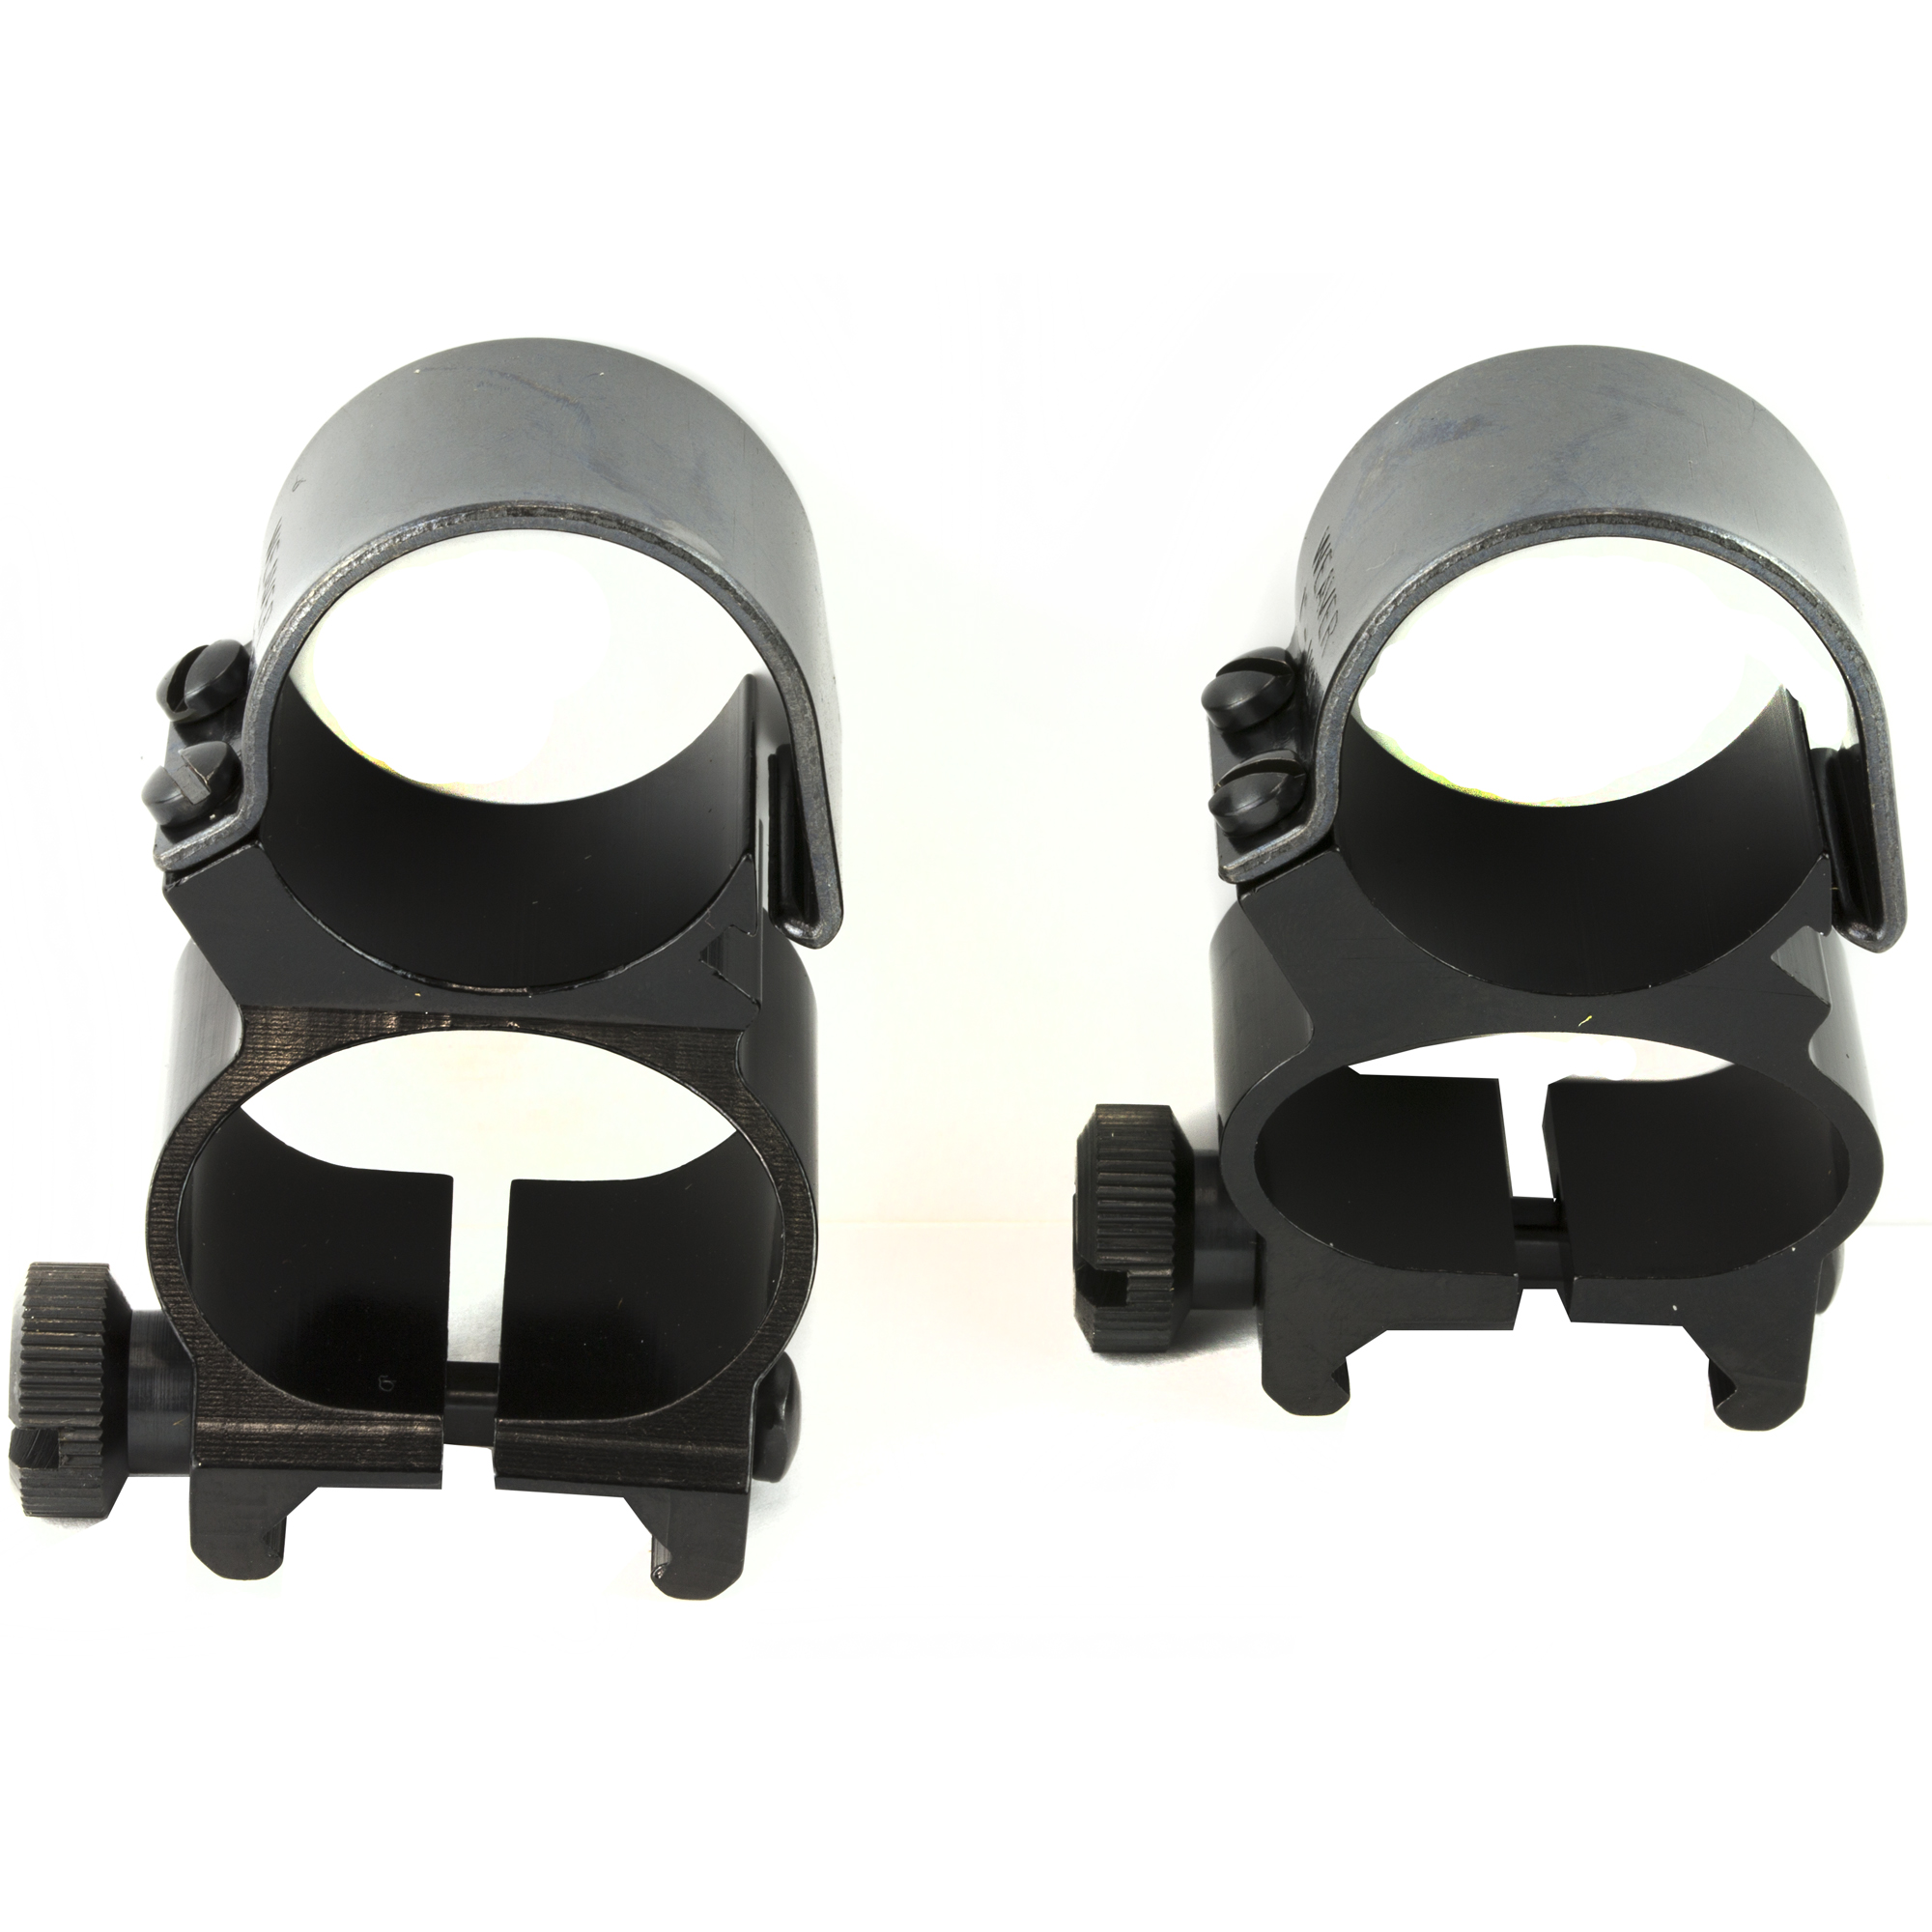 Utilize iron sights or your scope for quick target acquisition with these convenient rings. The square cross lock bolt fits tightly and securely with Weaver(R) Top Mount Bases.